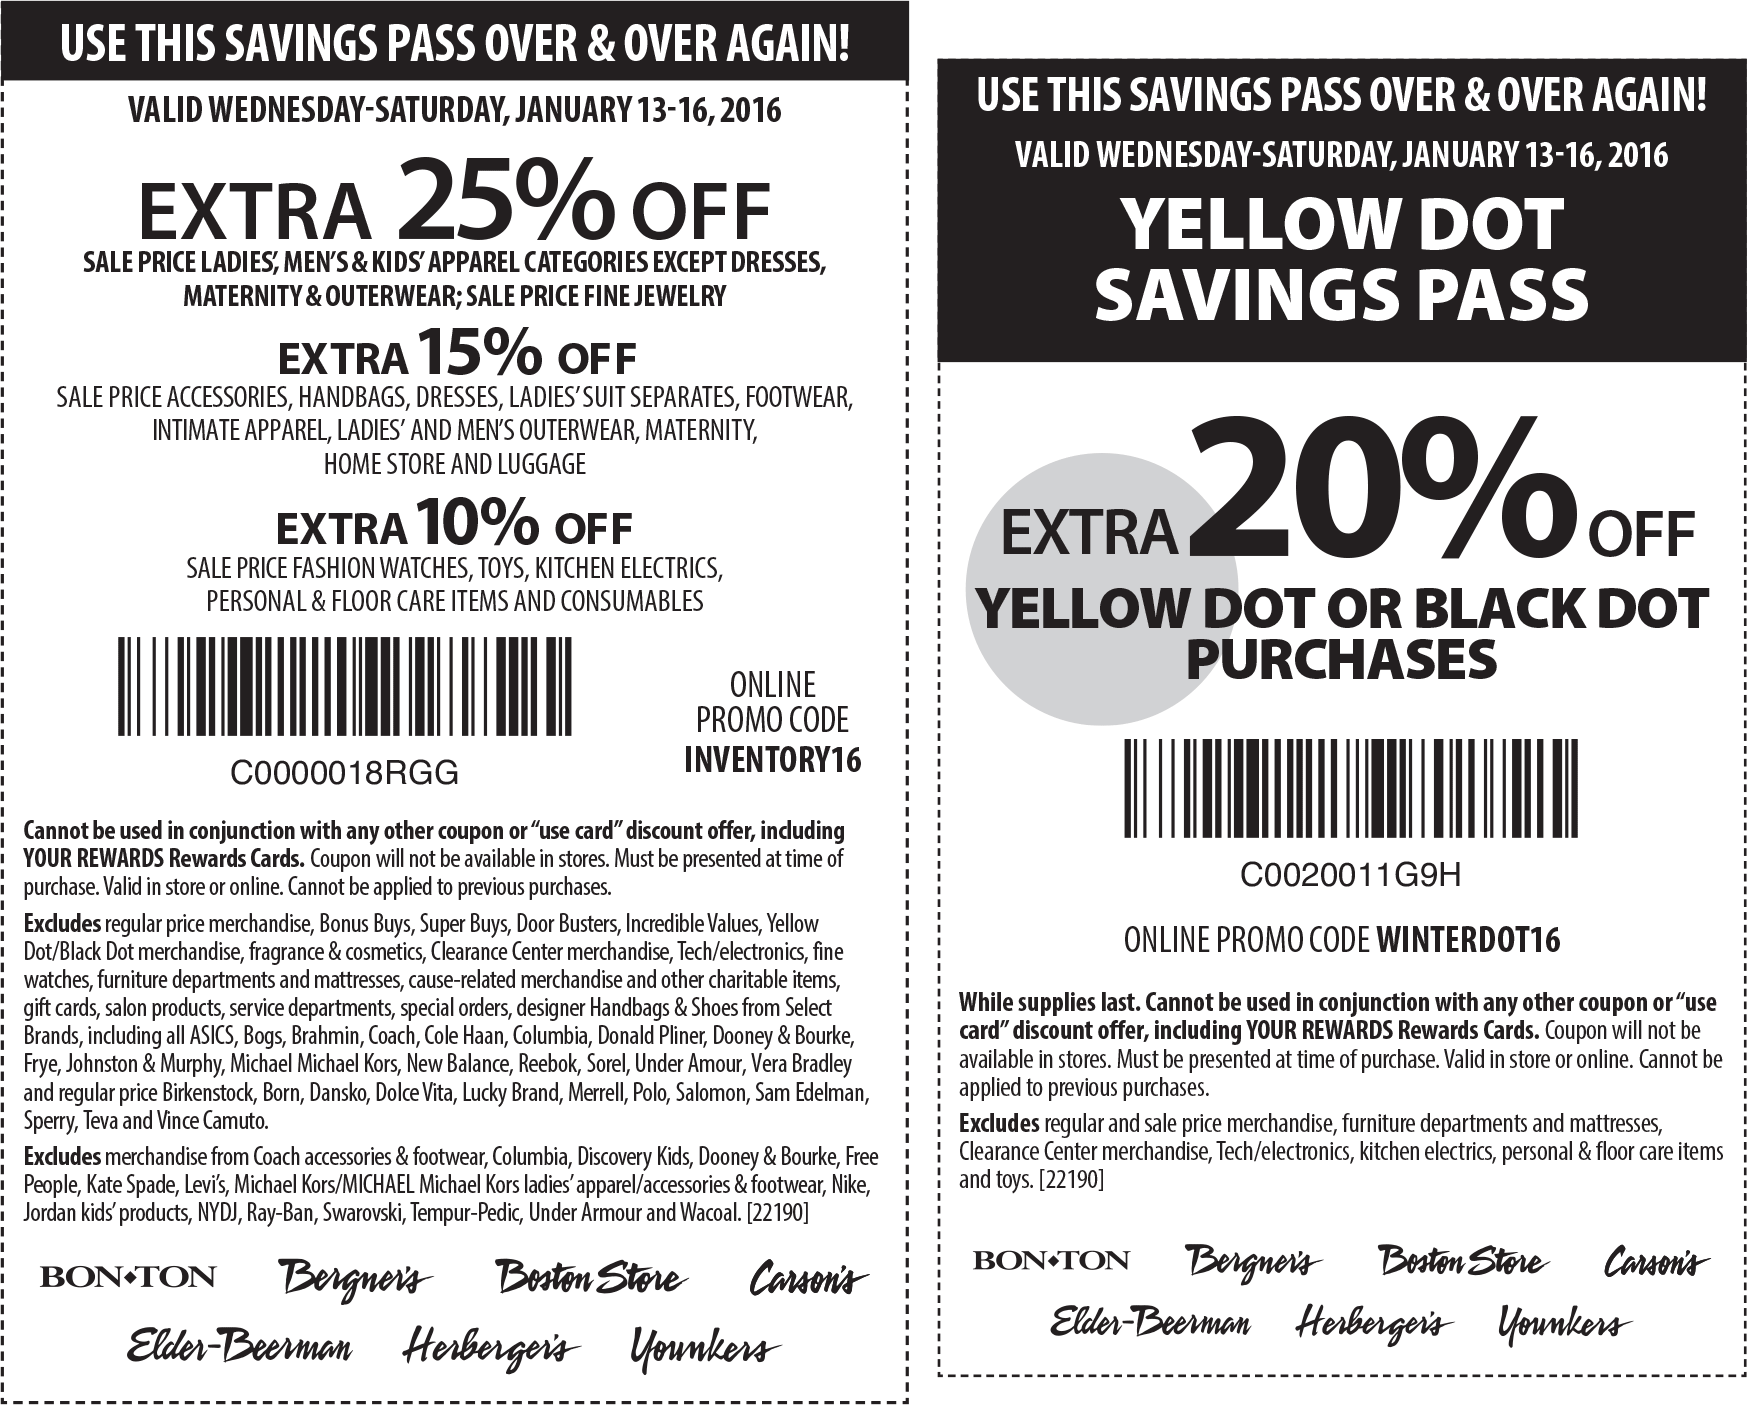 Carsons Coupon September 2018 Extra 25% off & more at Bon Ton, Carsons & sister stores, or online via promo code INVENTORY16